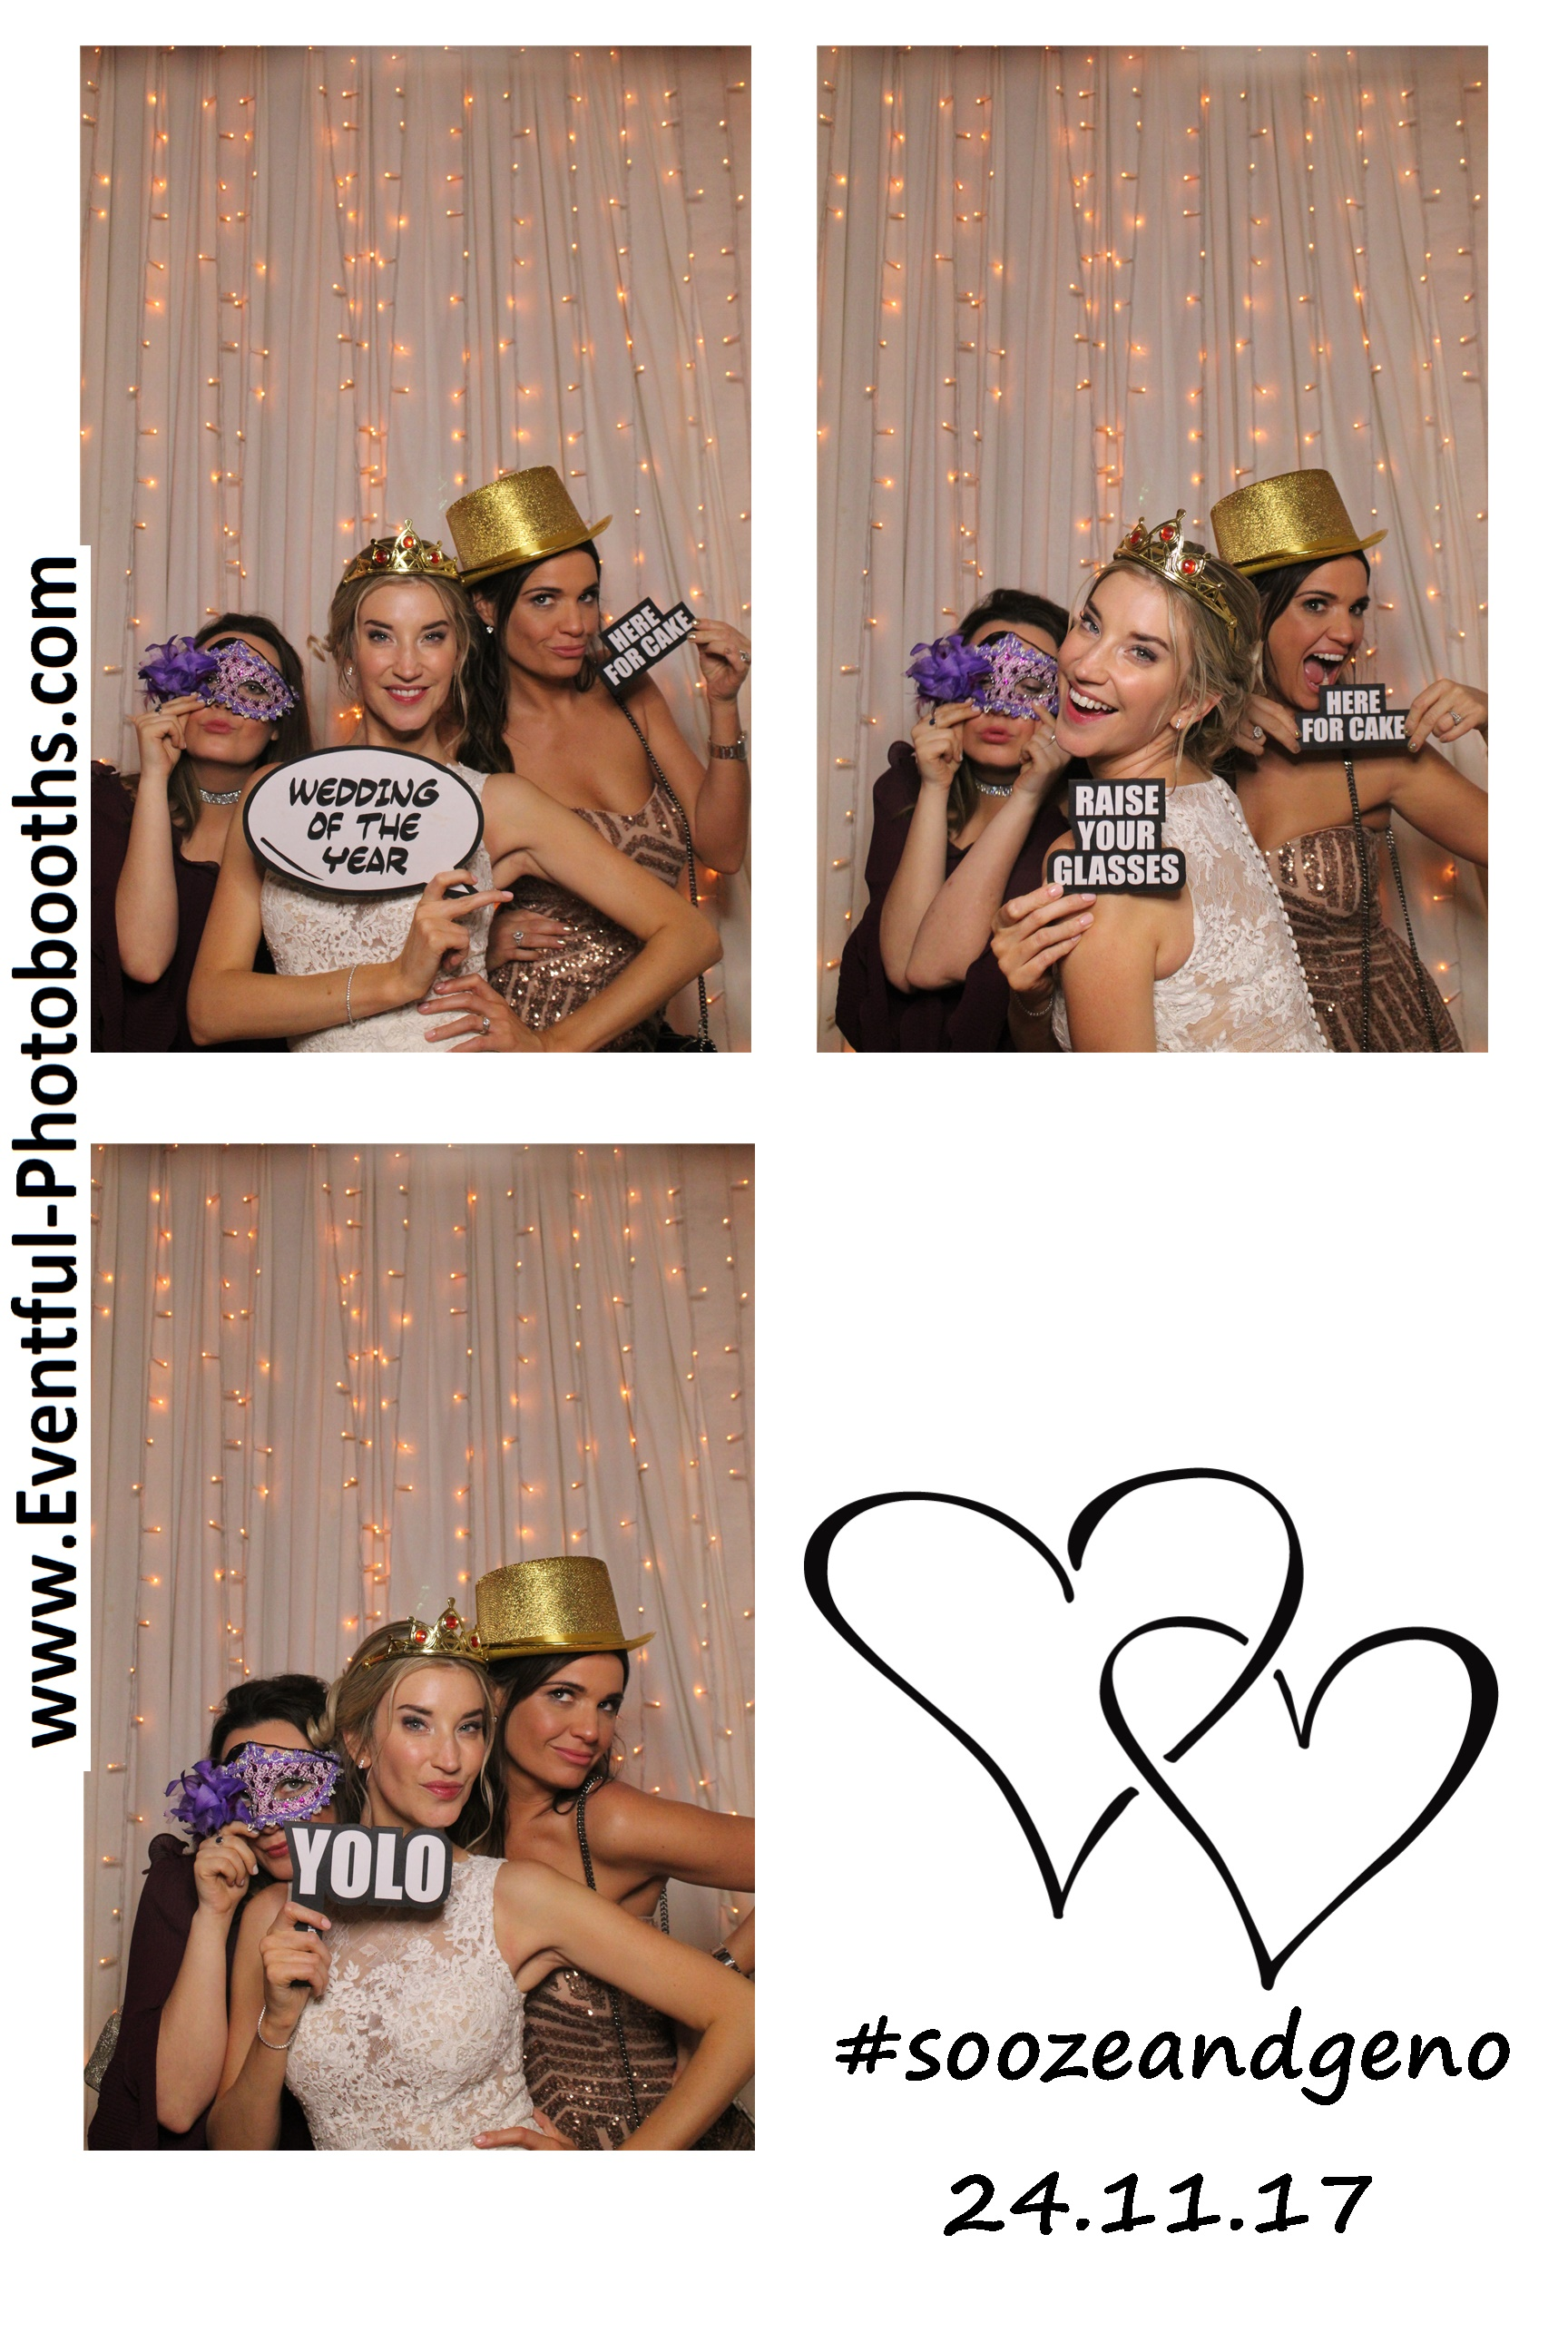 Weddings - Not much beats a good wedding! At Eventful-Photobooths, we understand that your wedding day will be one of the most special days of your entire life. The magic mirror is a great way to entertain and engage your guests and keep these magic memories forever! Our sleek and chic booth also adds a focal point for guests to gather and have fun. Decked out with our red carpet, the magic mirror looks great in all venues.